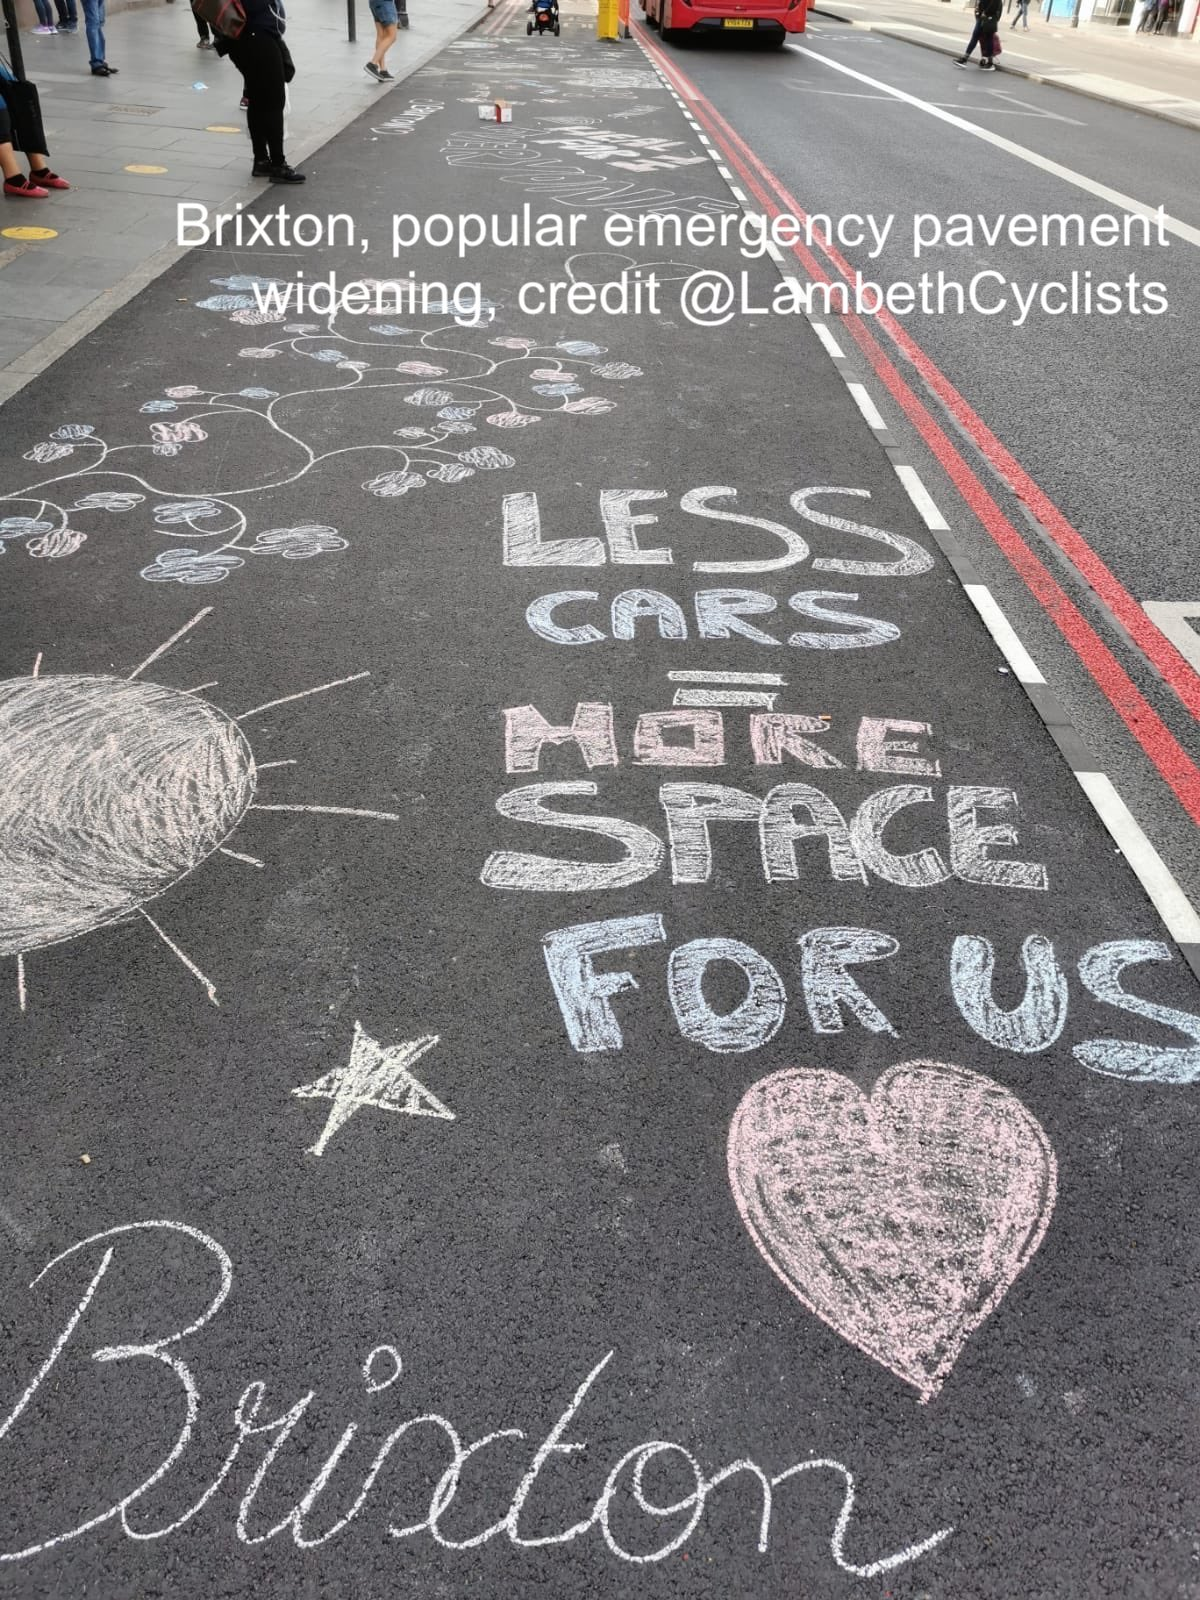 safe_travel_Lambeth_Brixton_pavement_widening_text.jpg